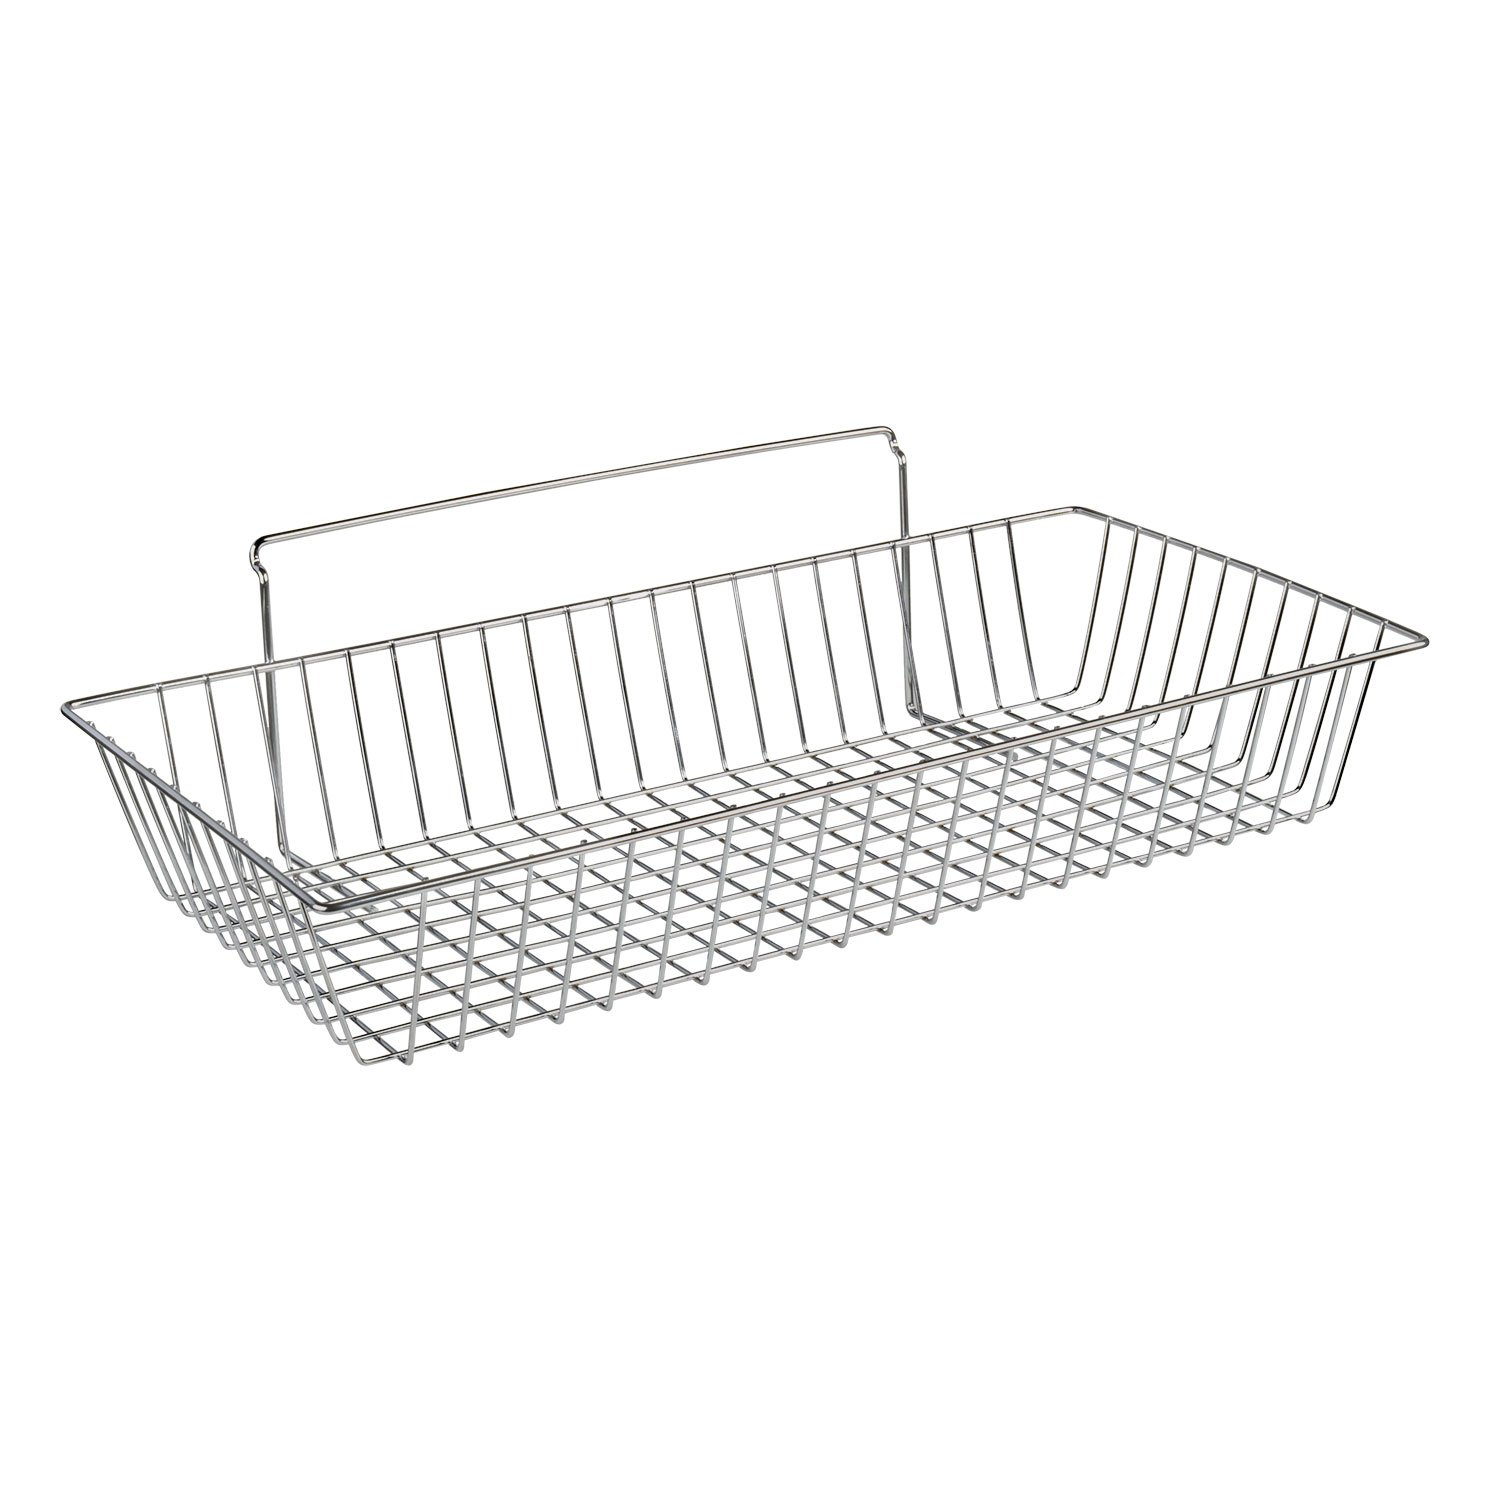 NeXtrac Wire Slatwall Basket for Merchandising, 24''L x 12''W x 4''D, Chrome